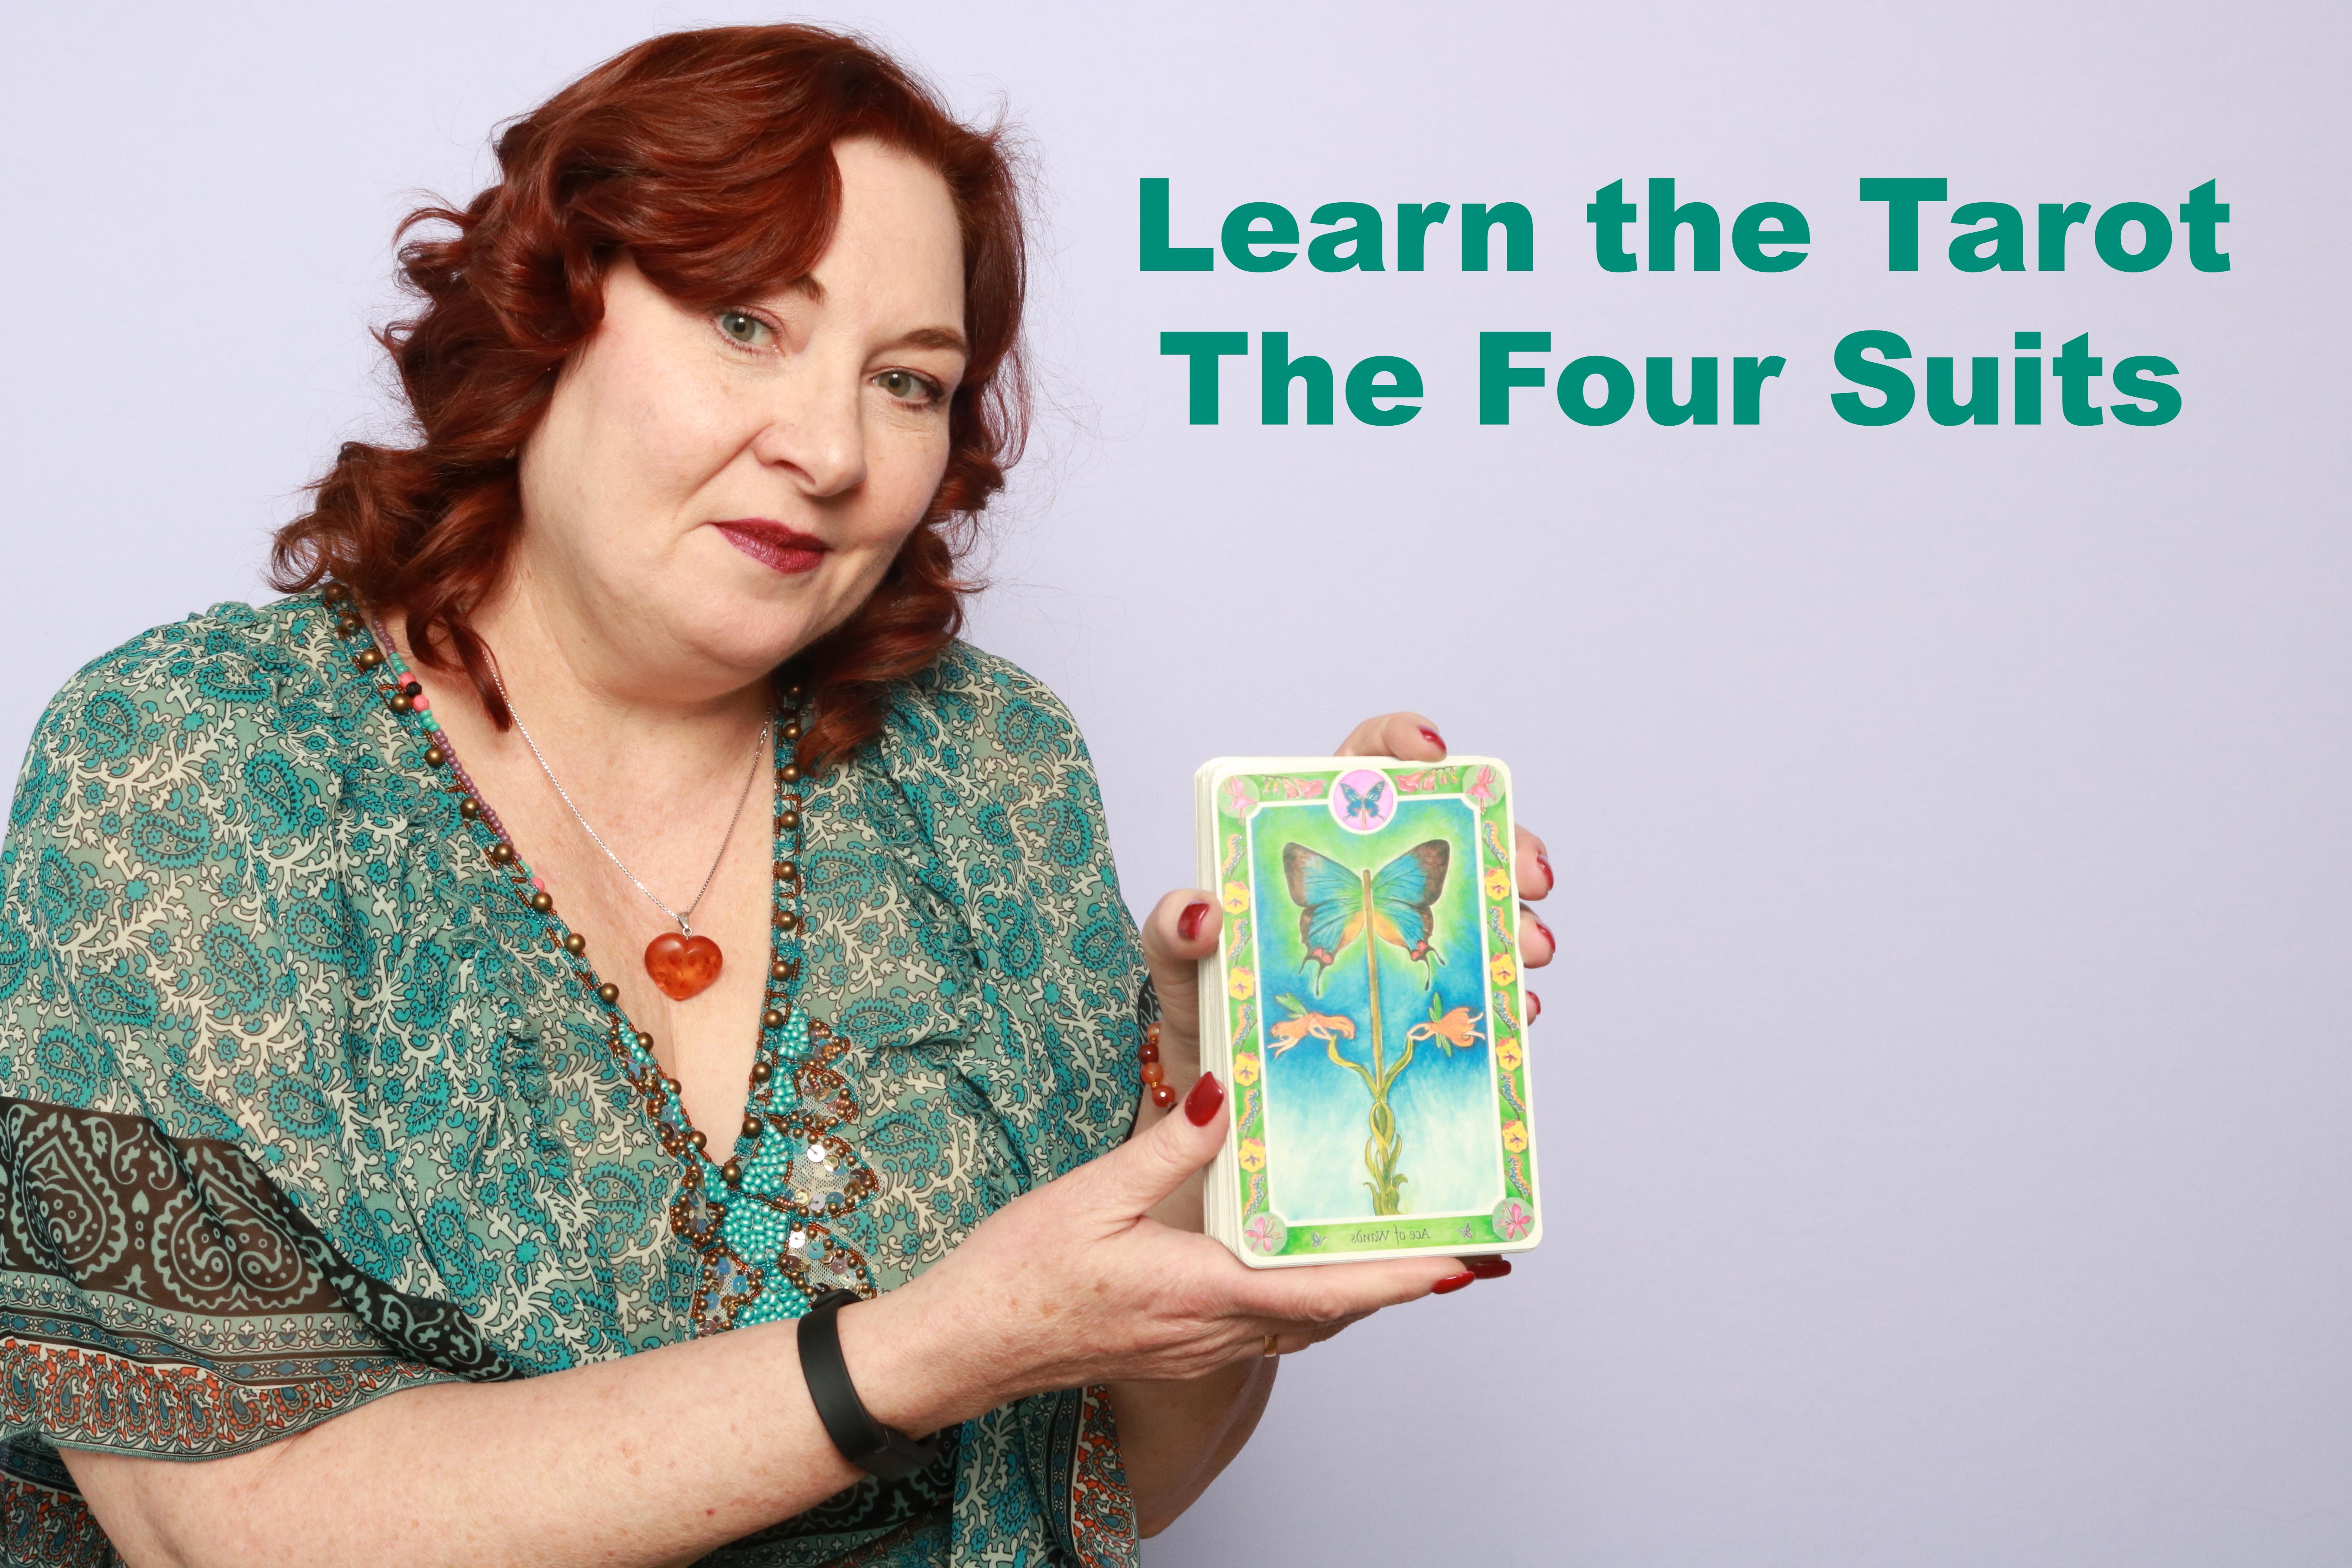 Learn the Tarot: From Swords to Cups